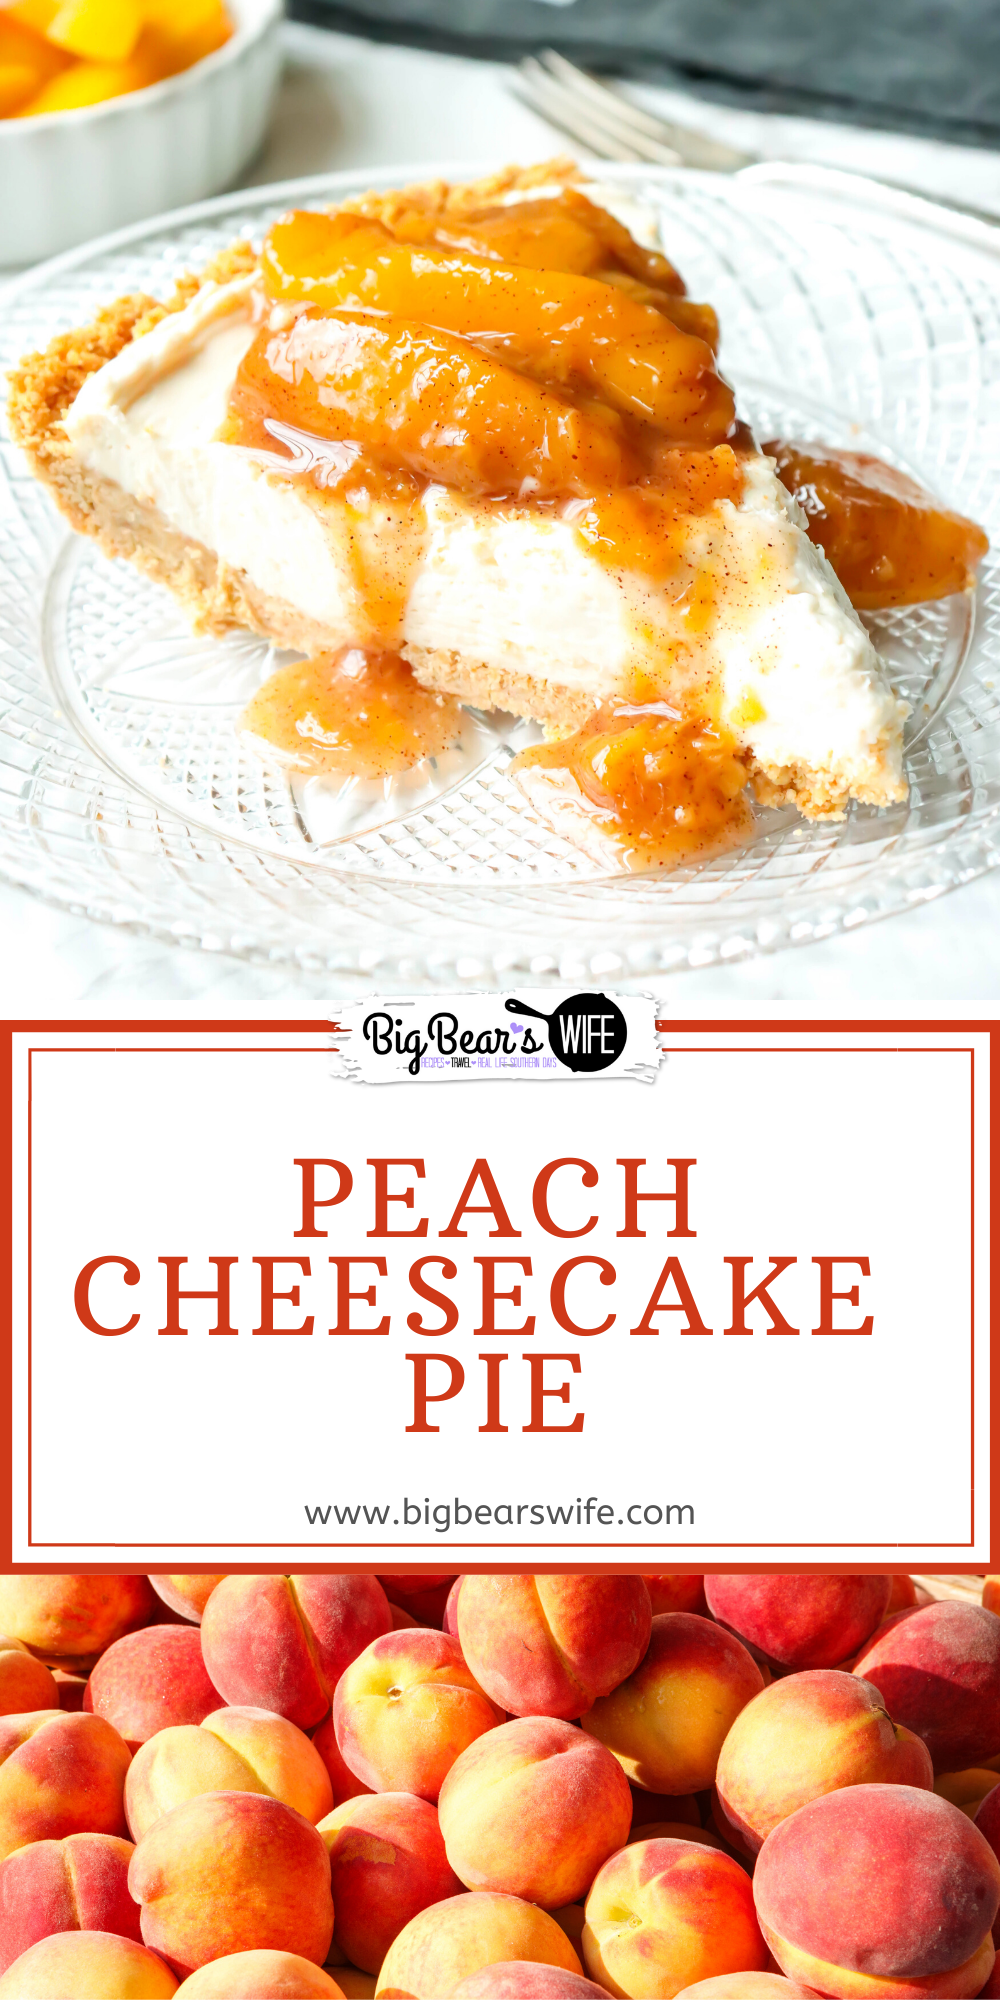 This chilled and creamy Peach Cheesecake Pie has a homemade graham cracker crust and is topped with a delicious peach sauce! via @bigbearswife